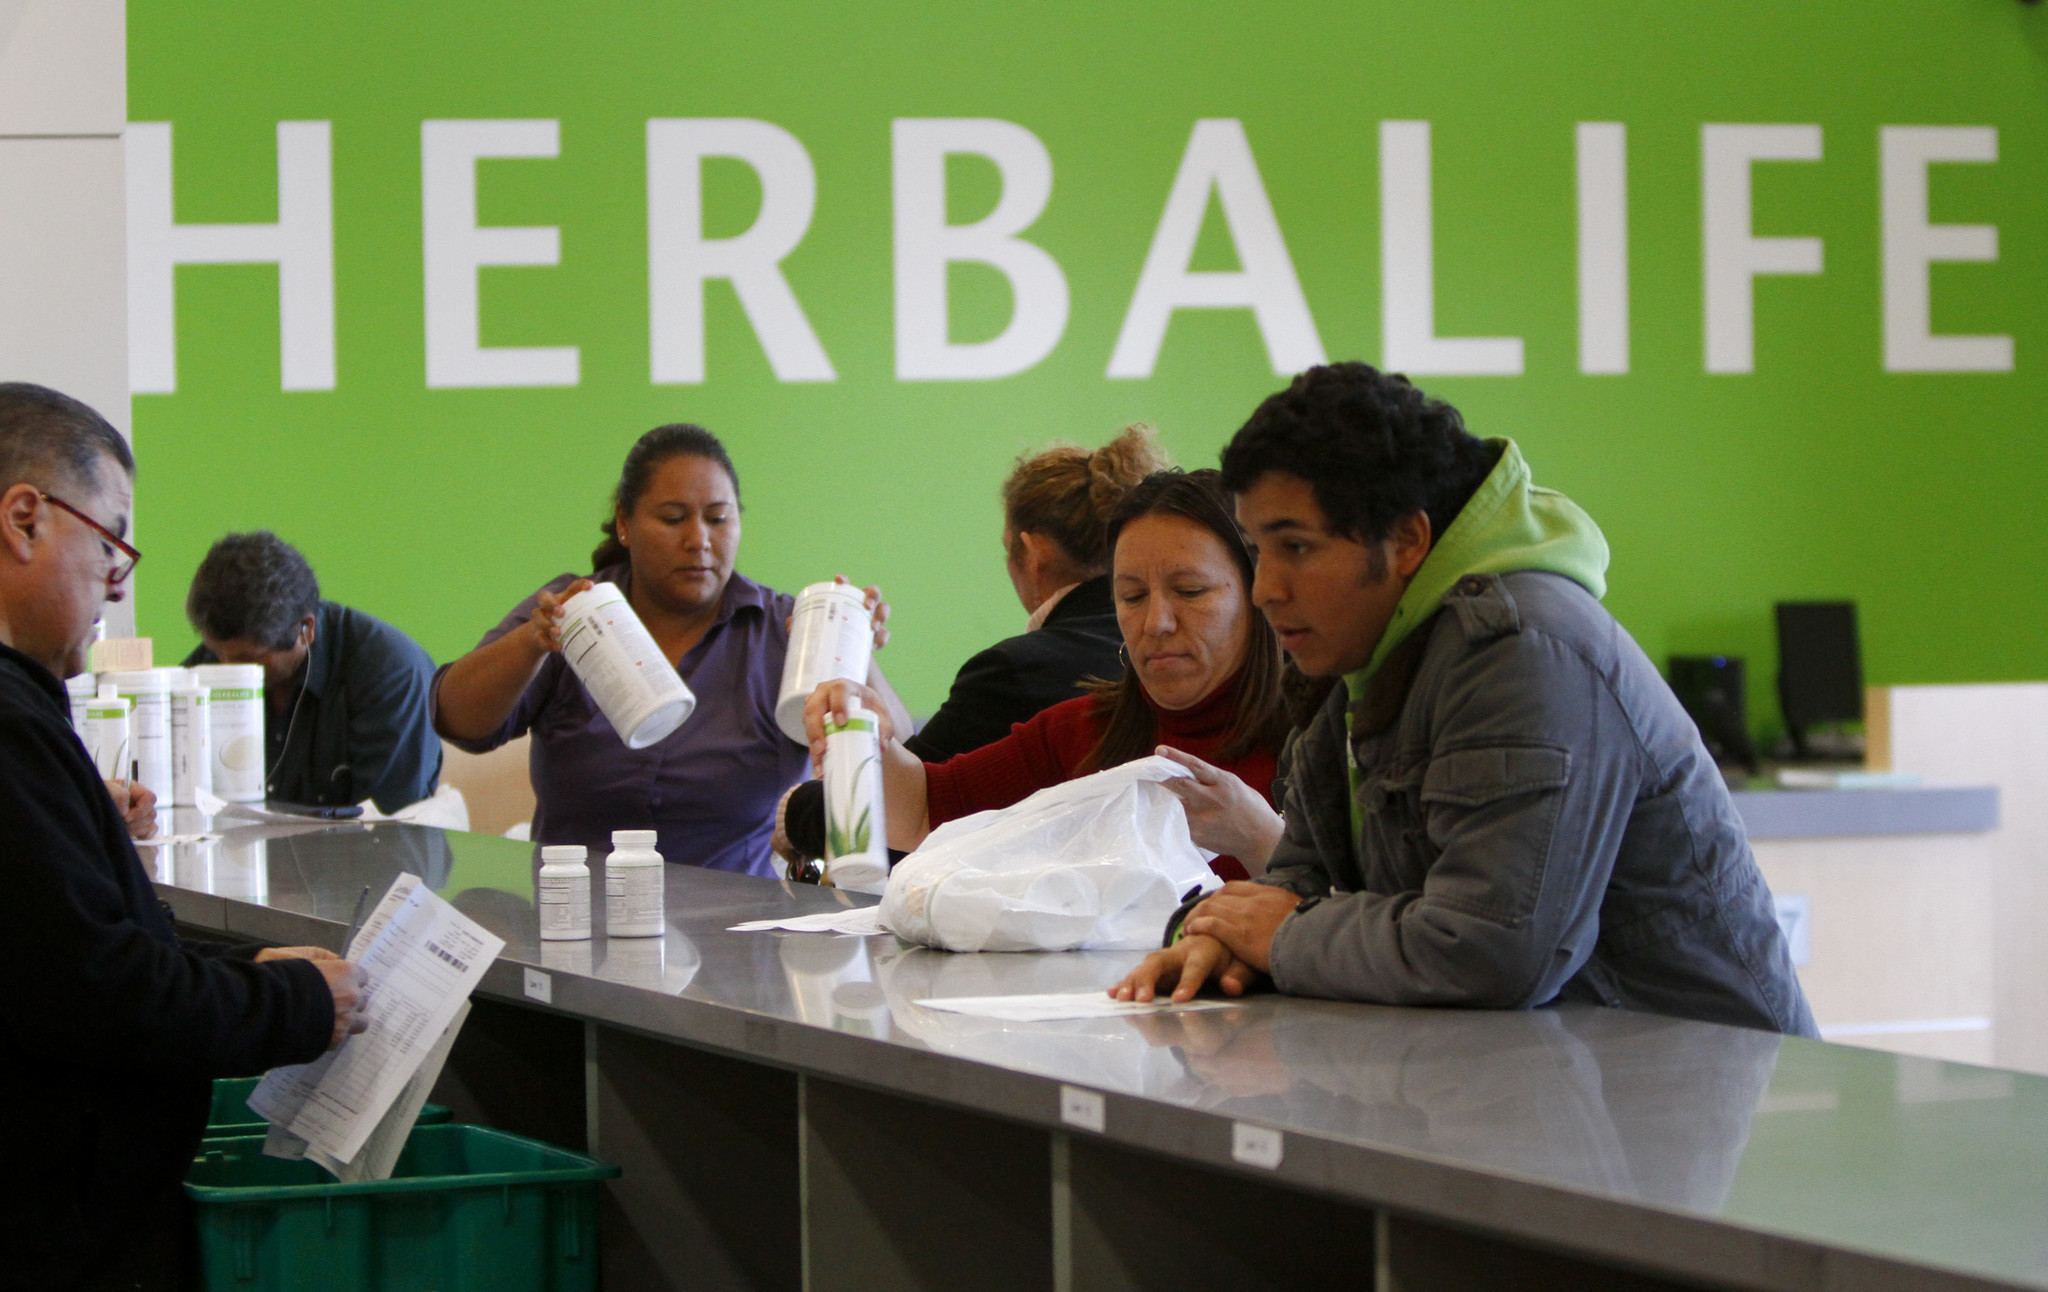 Herbalife distributors who lost money get some back